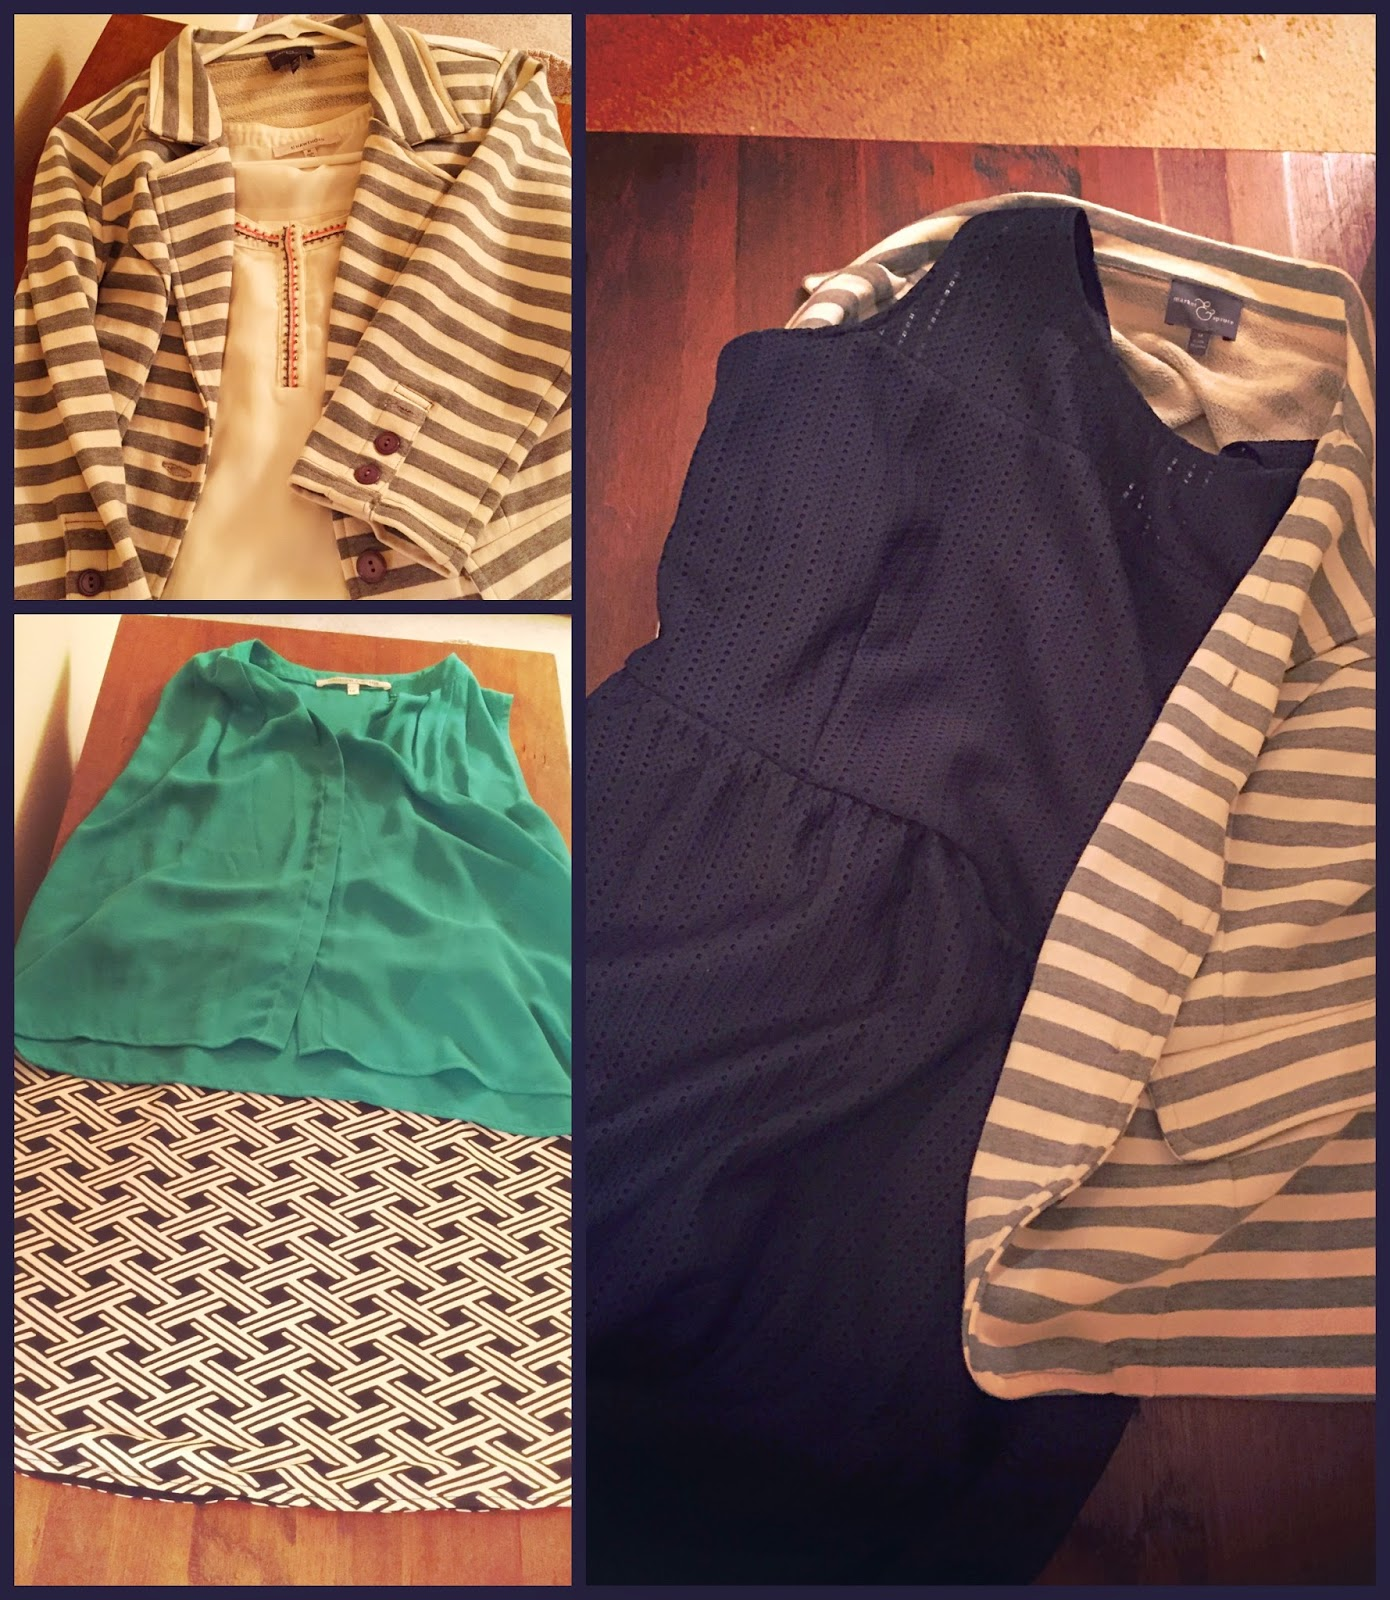 Stitch Fix #2, received 3/23/2015